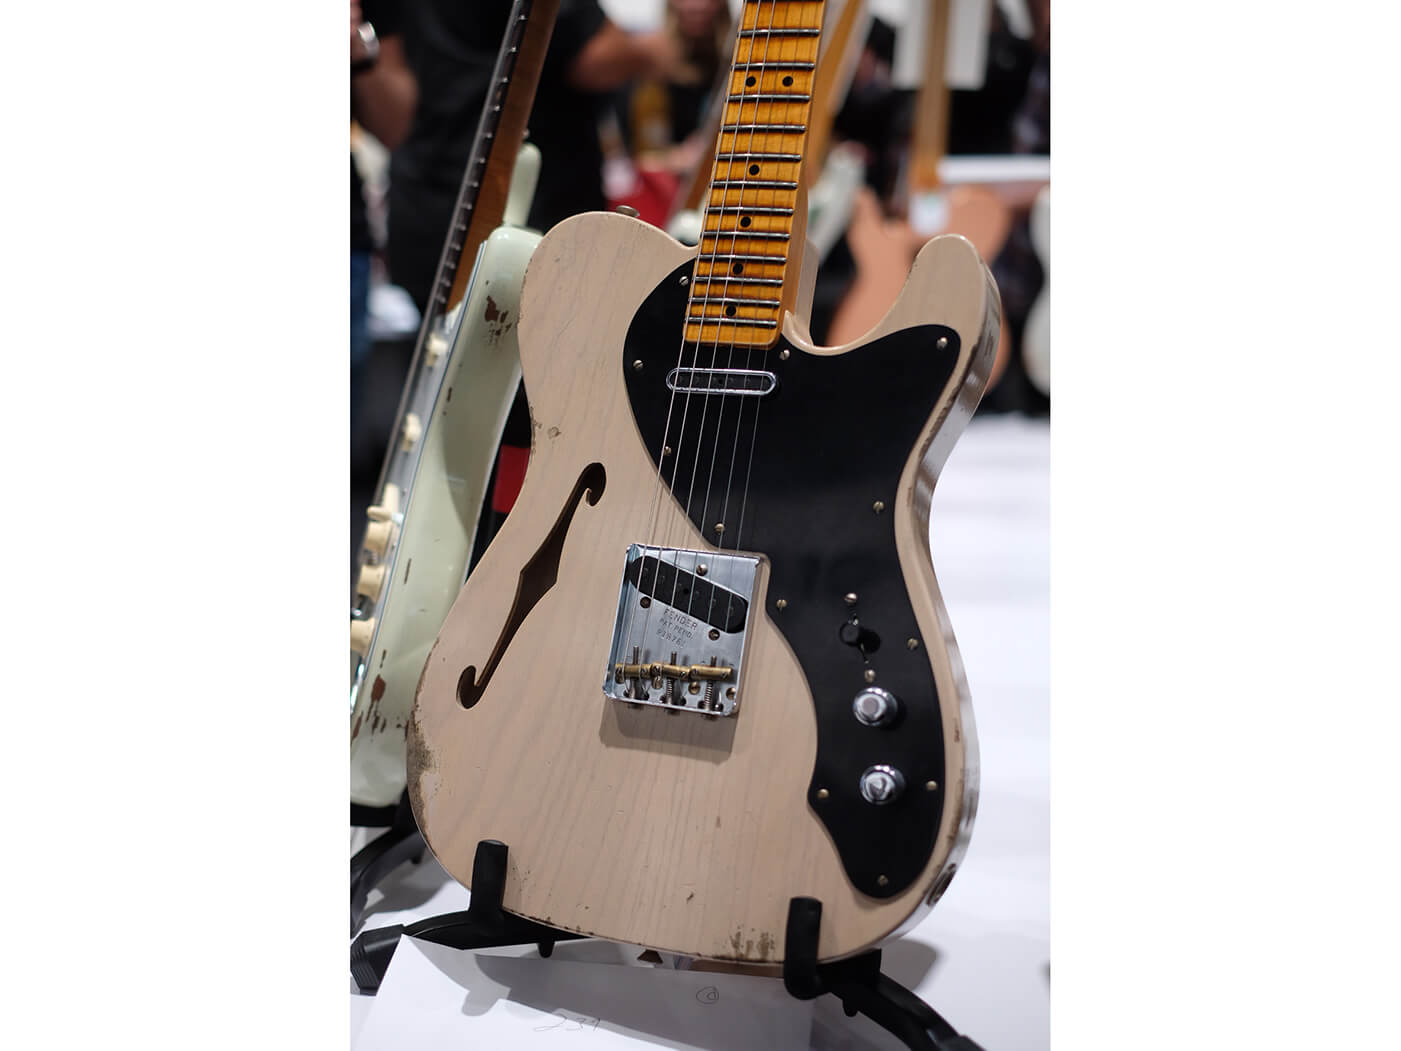 2019 Limited Edition Loaded Thinline Nocaster, Aged Dirty White Blonde